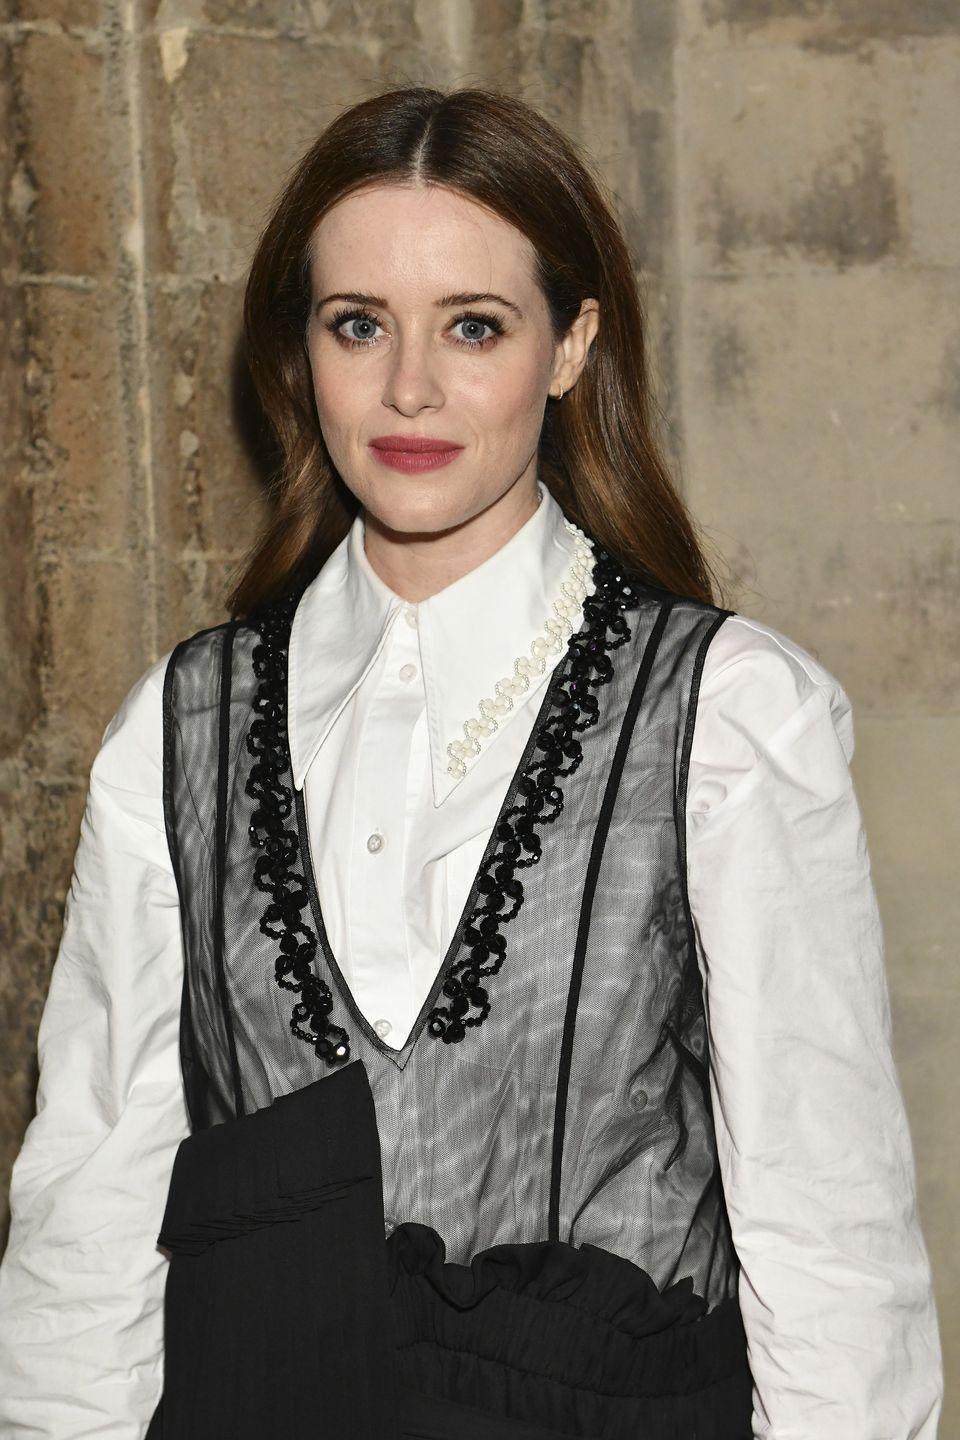 <p>If you want to mix up your brunette hair, try a deep shade of reddish-brown like Claire Foy. Chestnut hair warms up your features while still being subtle. </p>